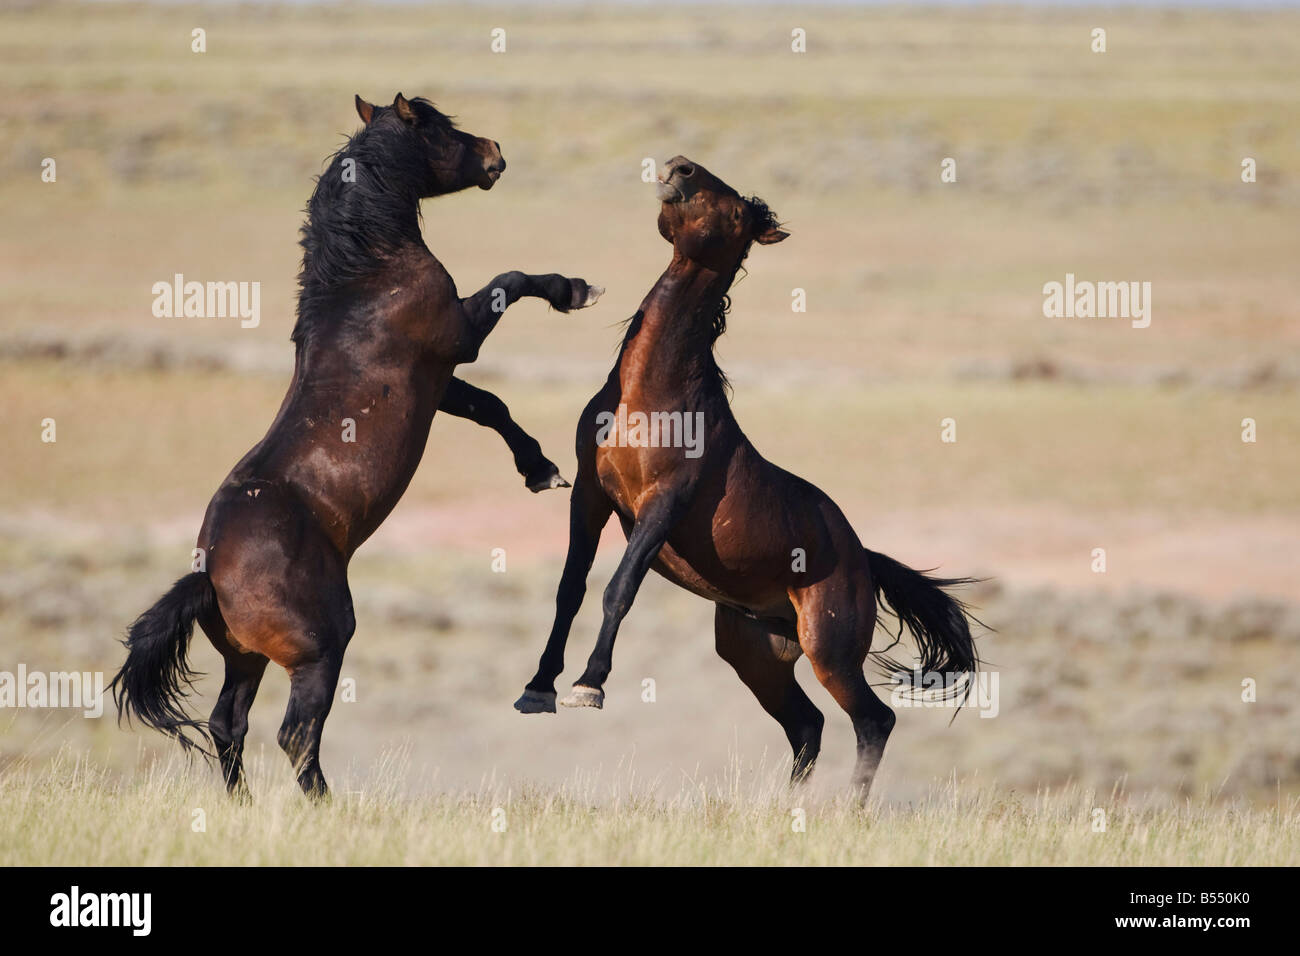 Cheval Mustang Equus caballus etalons combats Pryor Mountain Wild Horse gamme Montana USA Photo Stock